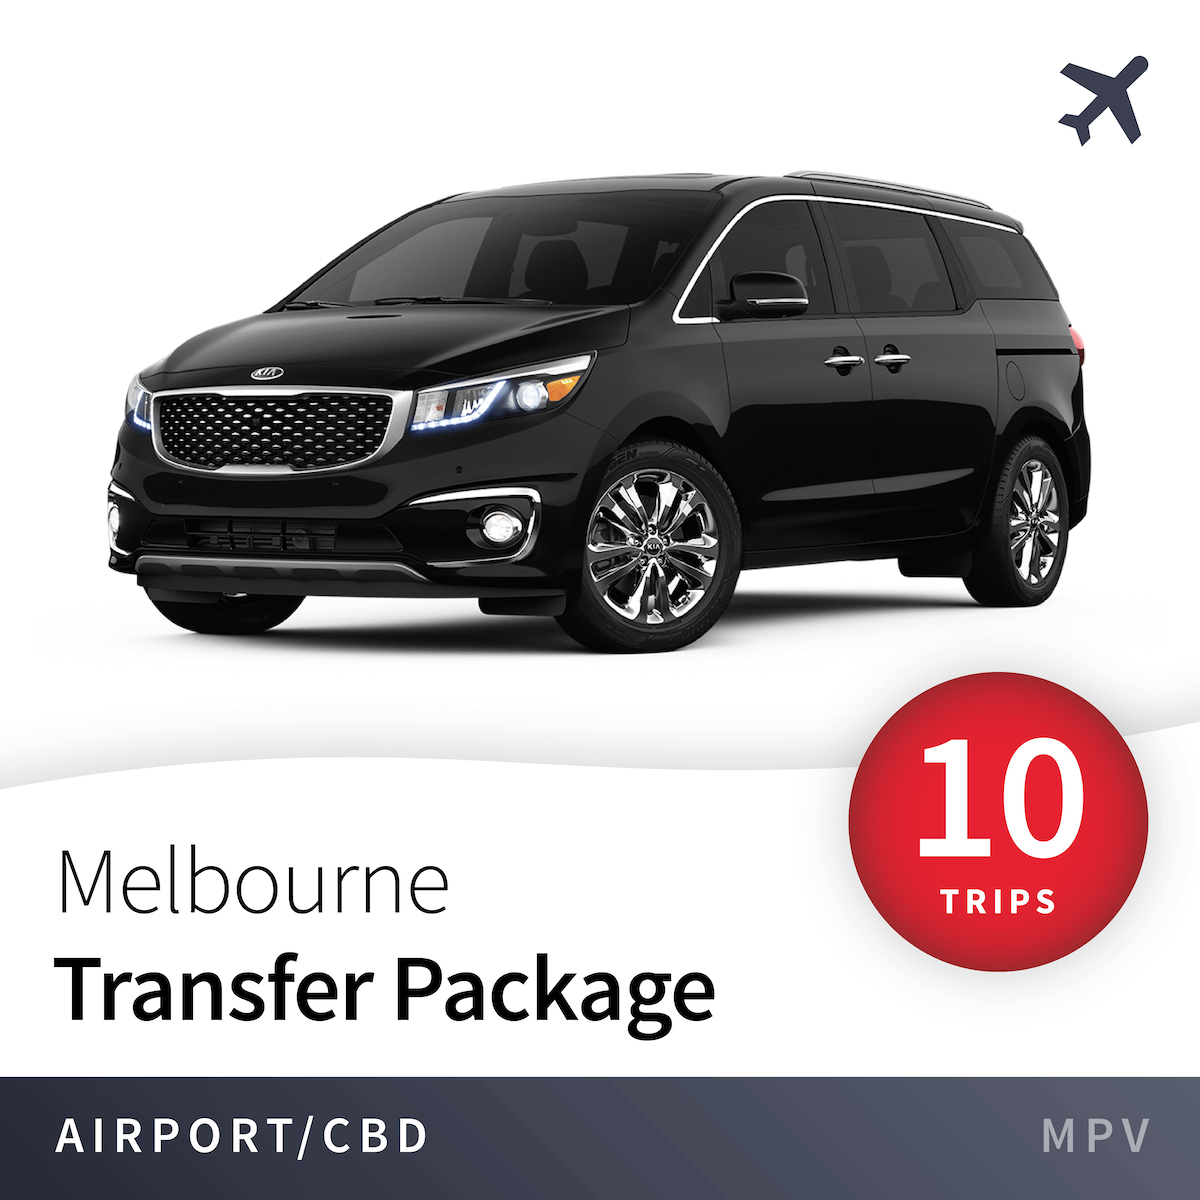 Melbourne Airport Transfer Package - MPV (10 Trips) 6